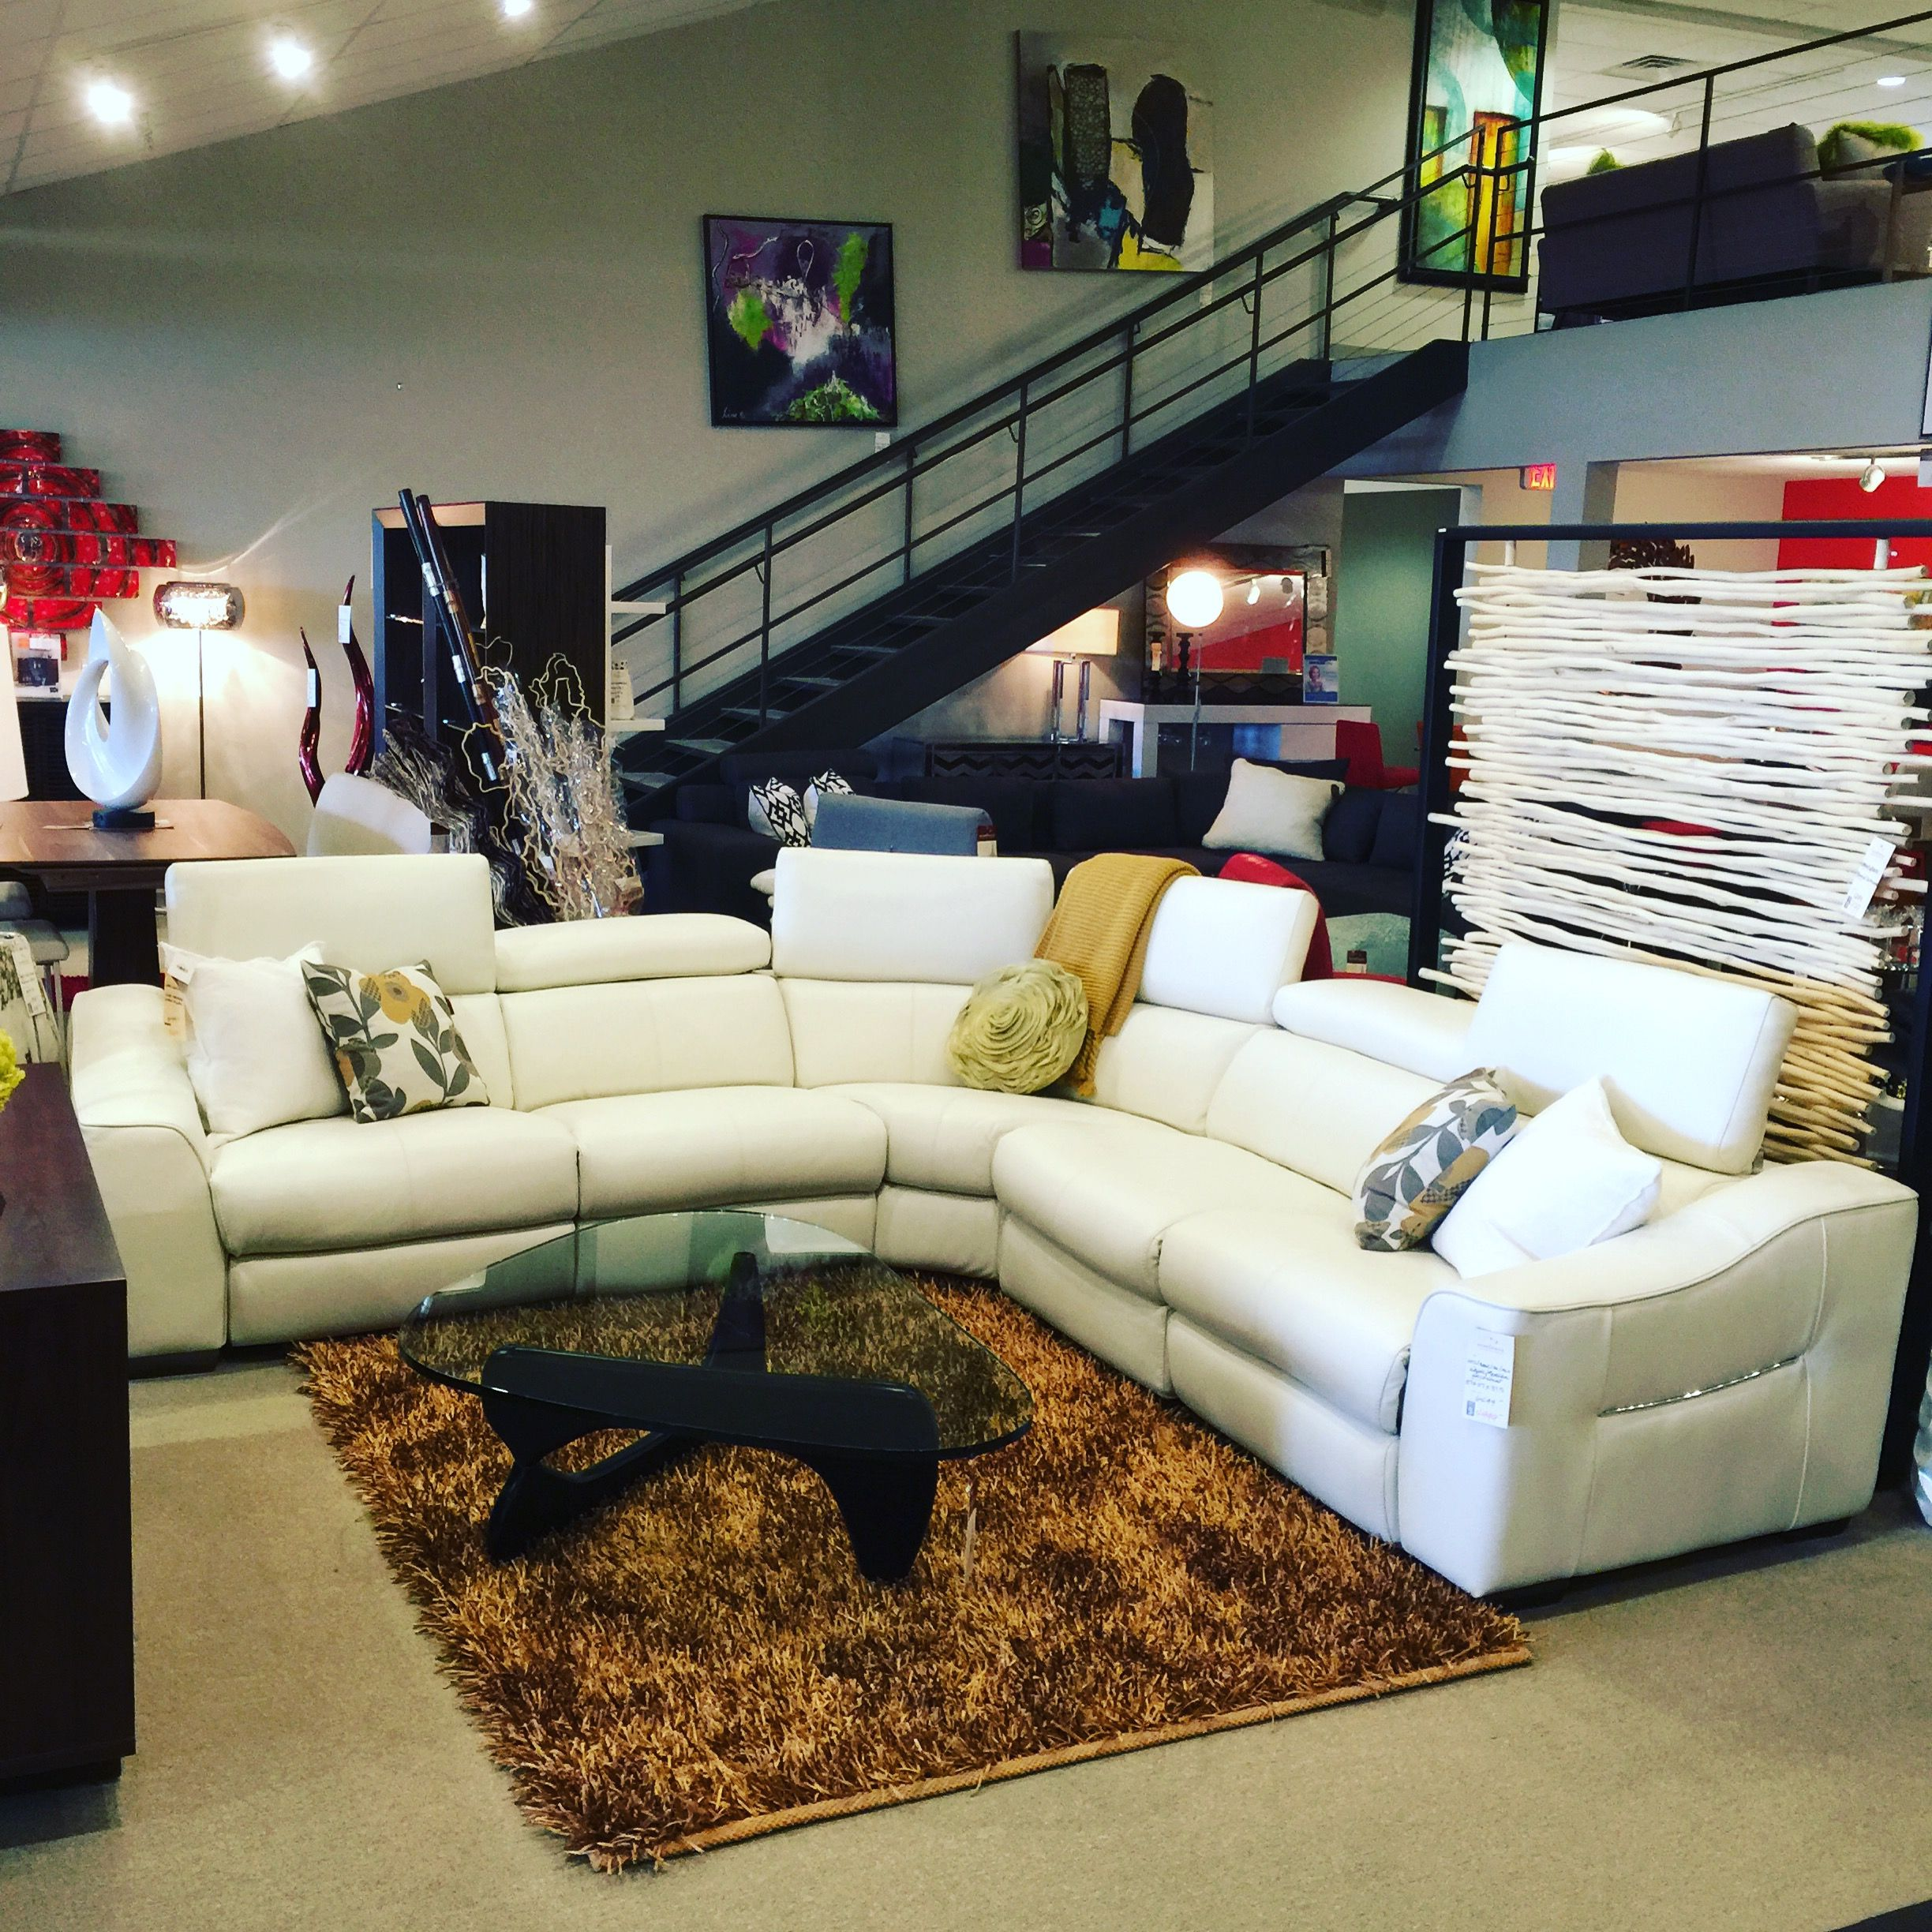 Megalo Sectional Scandinavia Inc Htl Leather New Orleans Metairie Louisiana Contemporary Furniture Modern